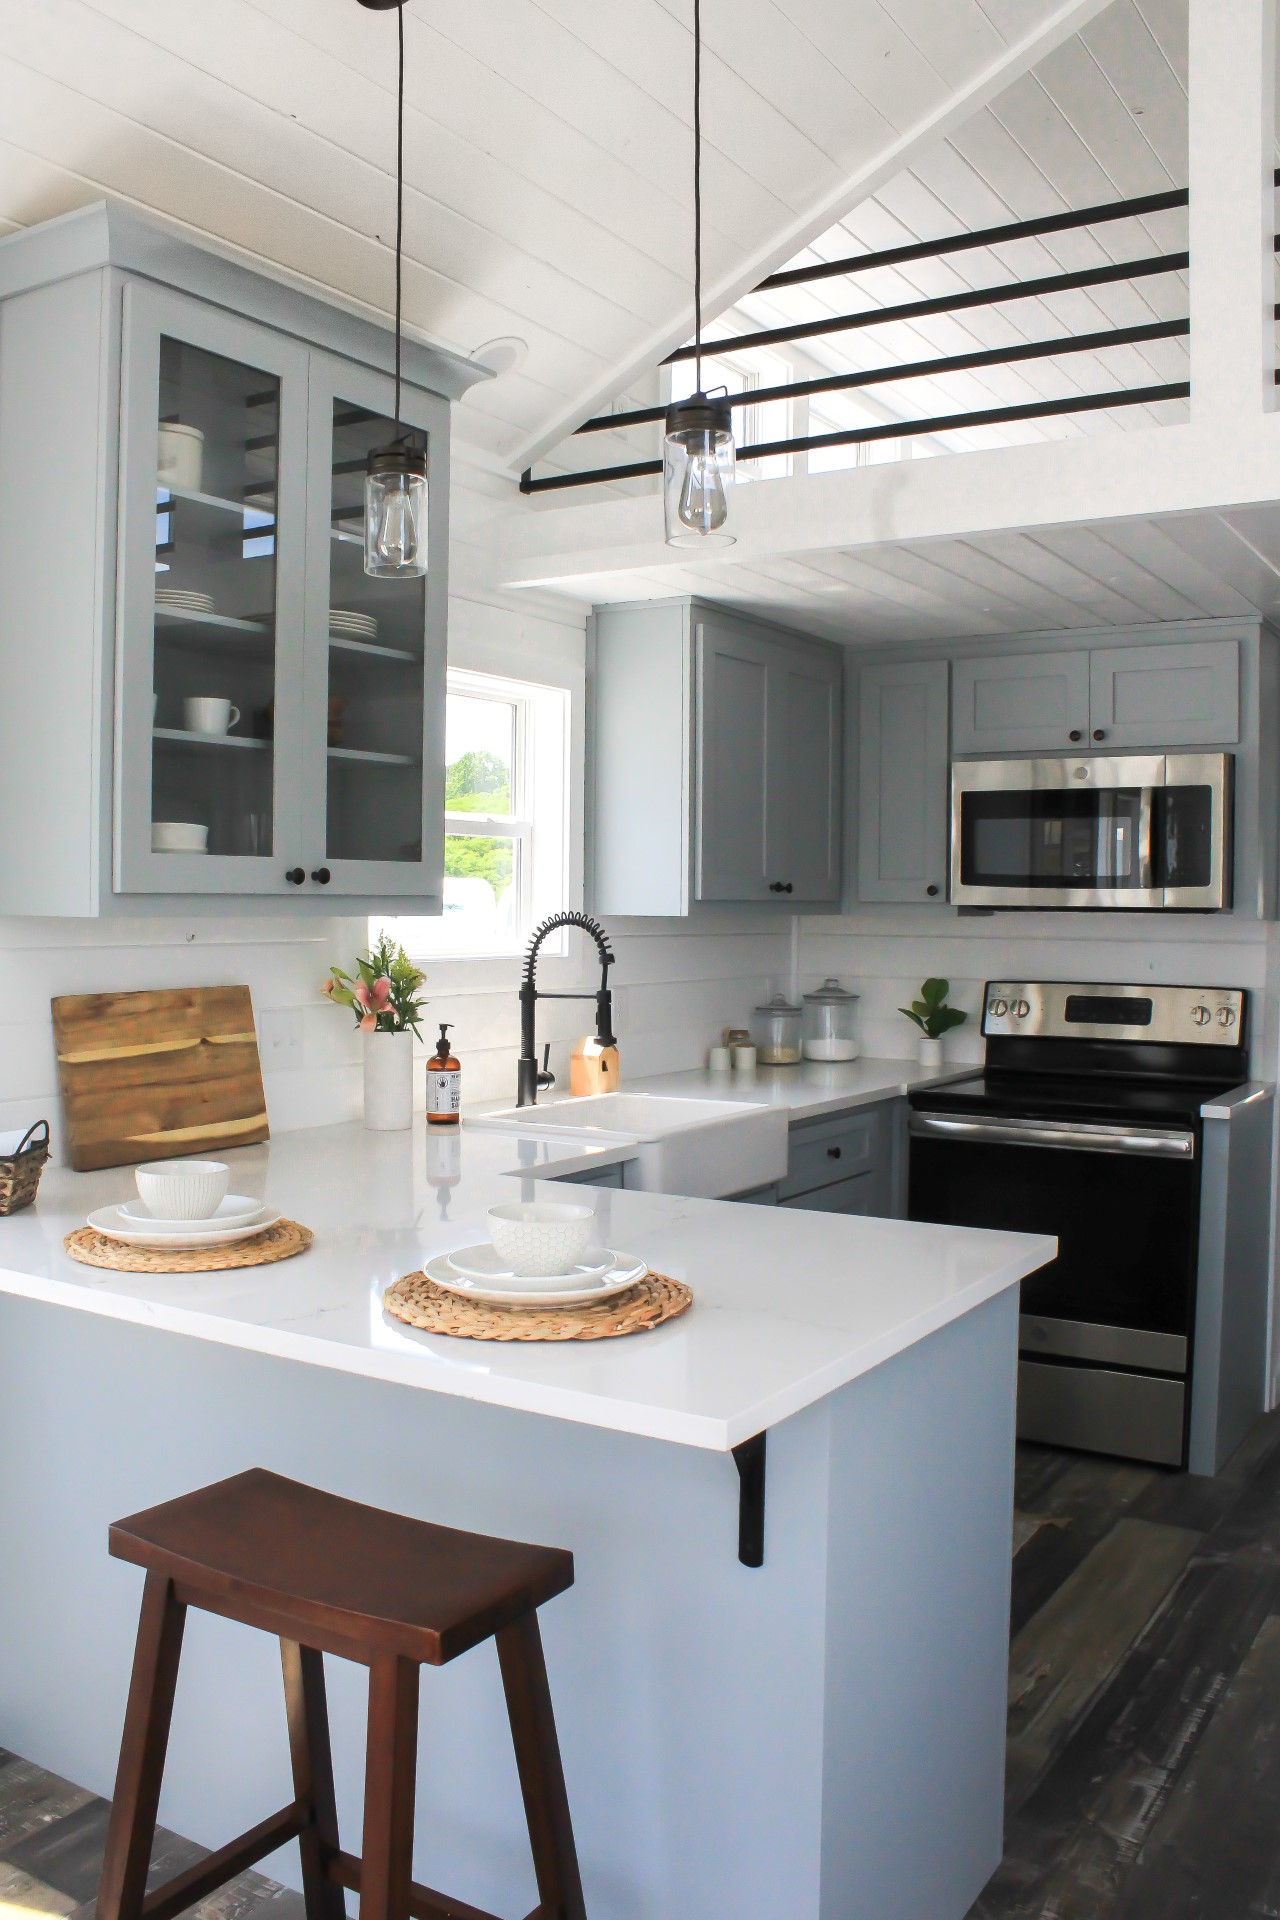 The Zion Mustard Seed Edition Mustard Seed Tiny Homes